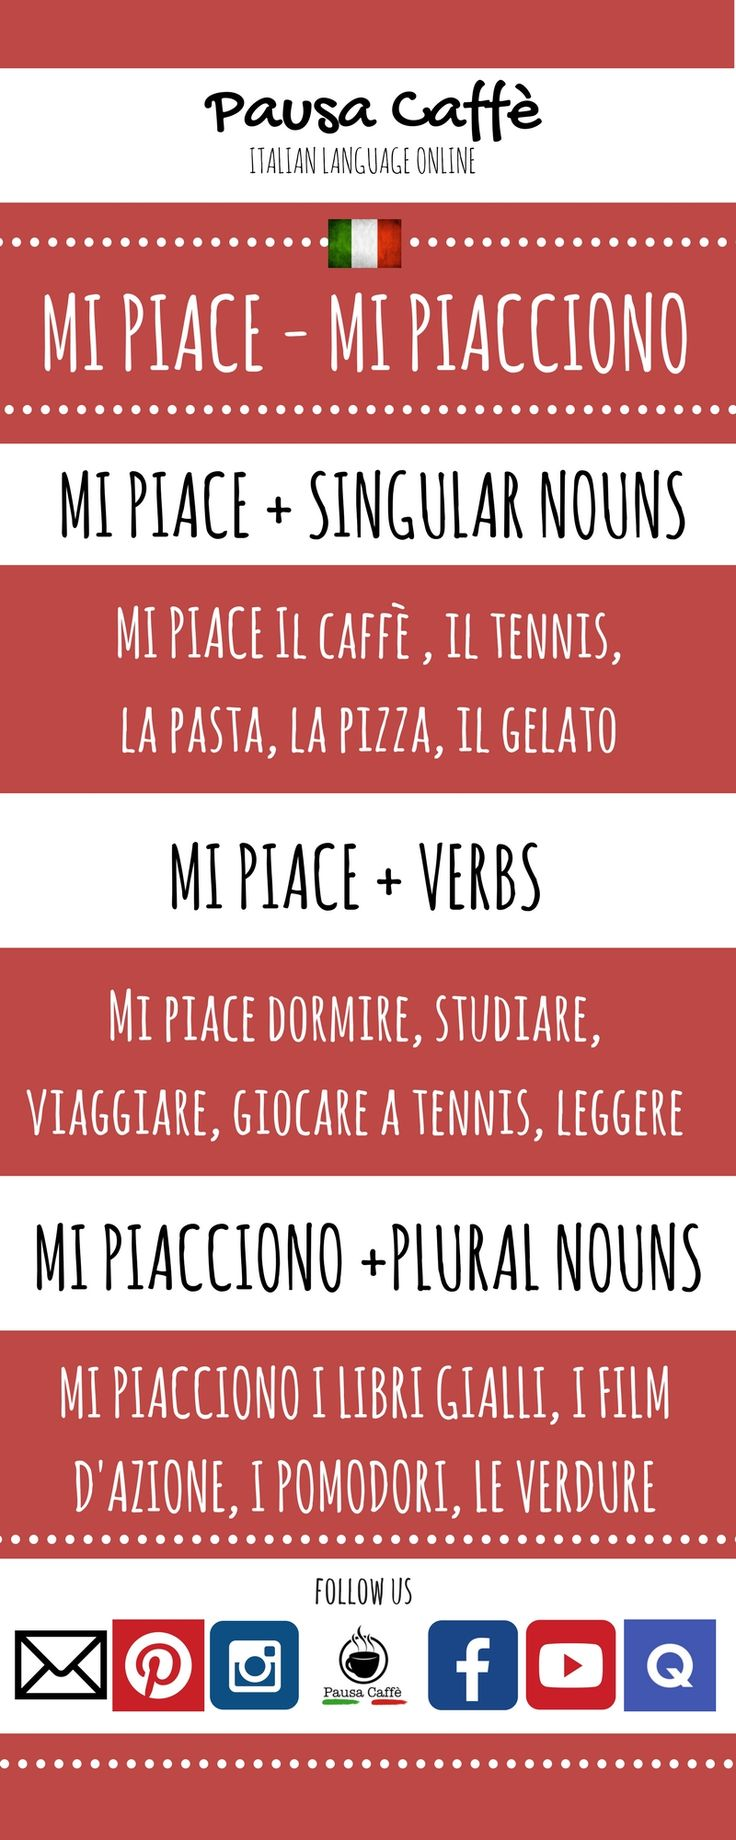 "The verb 'PIACERE' allows you to express what you like in Italian. but it is a tricky verb because it really means "" to be pleasing to"". Learn how to use it properly with our examples!"